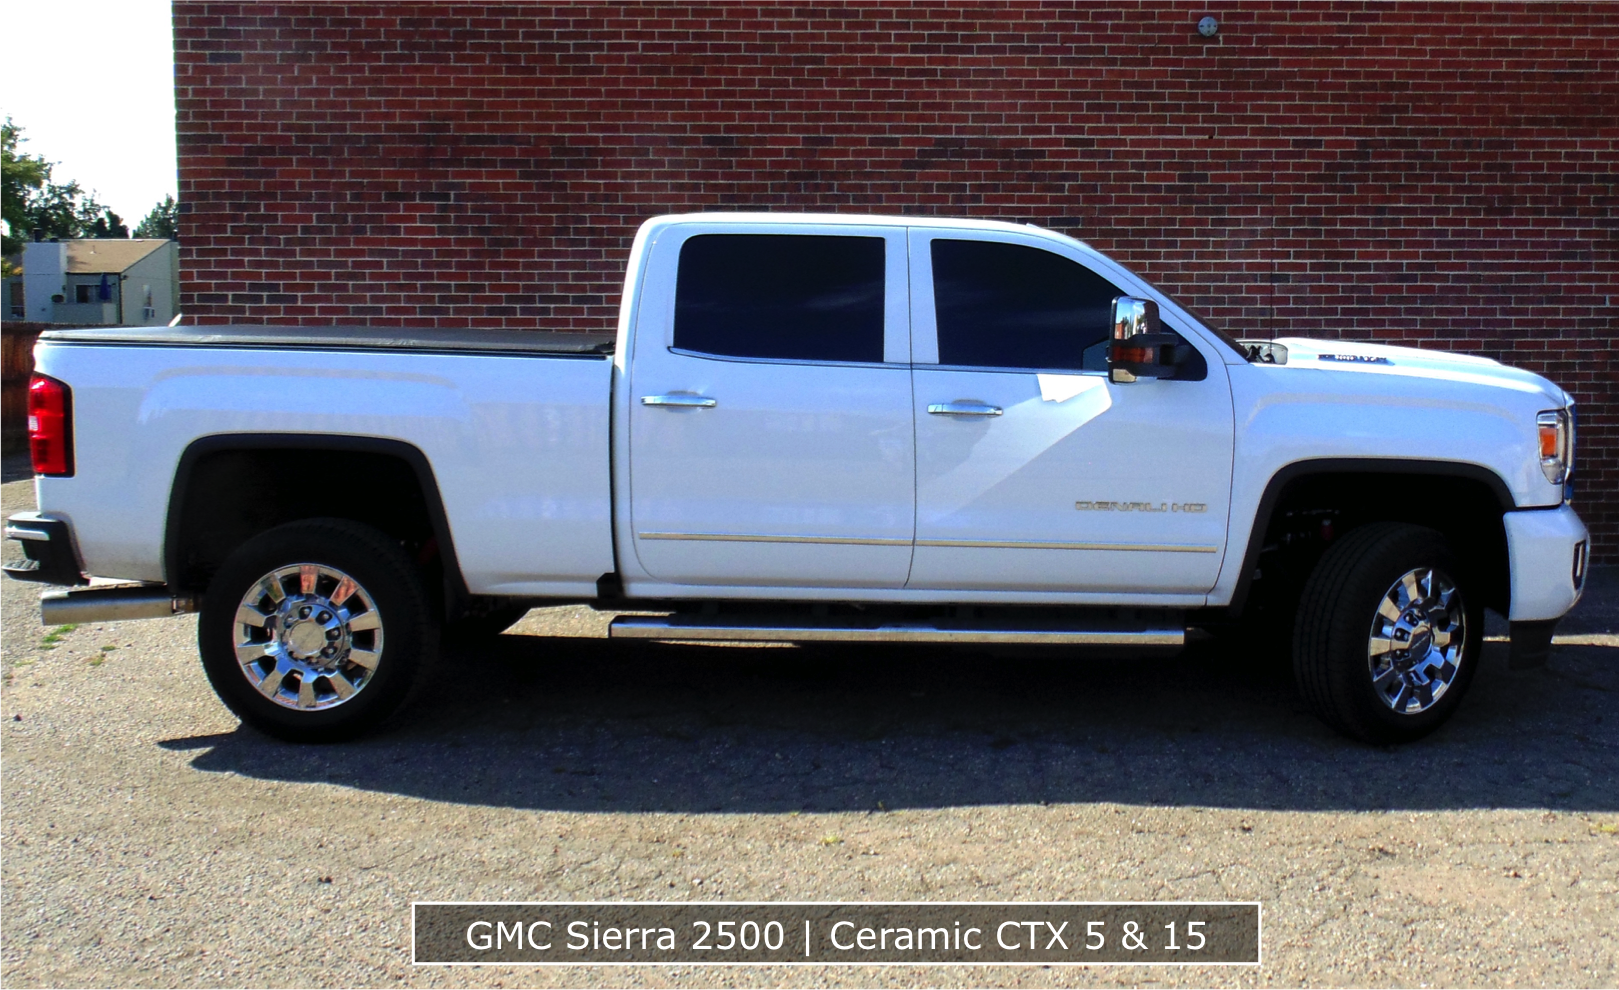 Ceramic Window Tint on GMC Truck